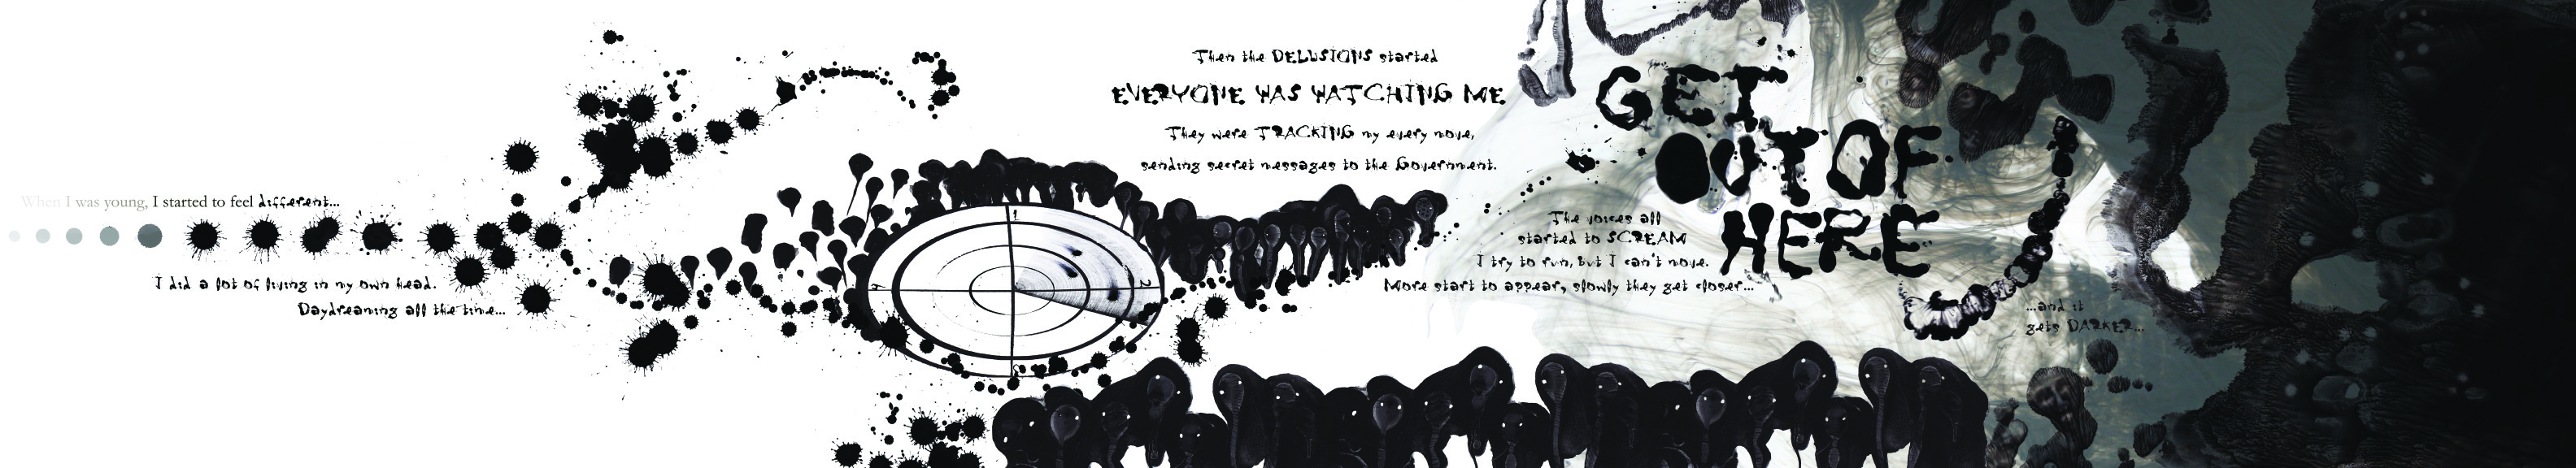 Ink scroll created as a visual translation of a schizophrenic episode